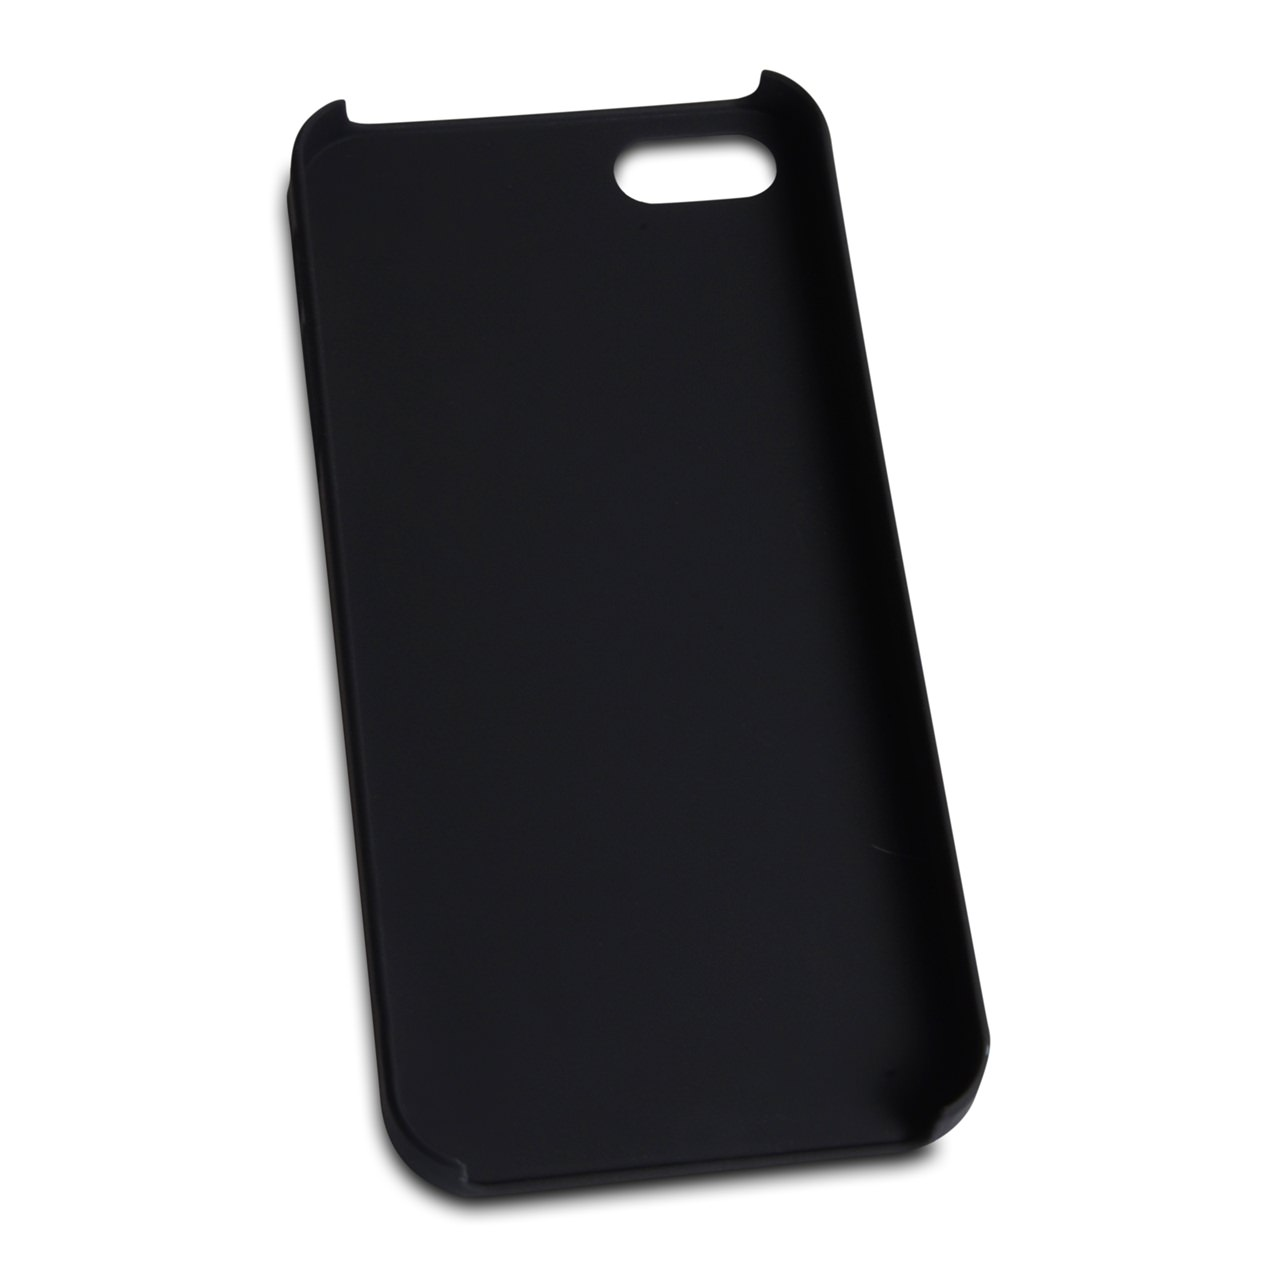 YouSave Accessories iPhone 5 / 5S Hard Hybrid Case - Black